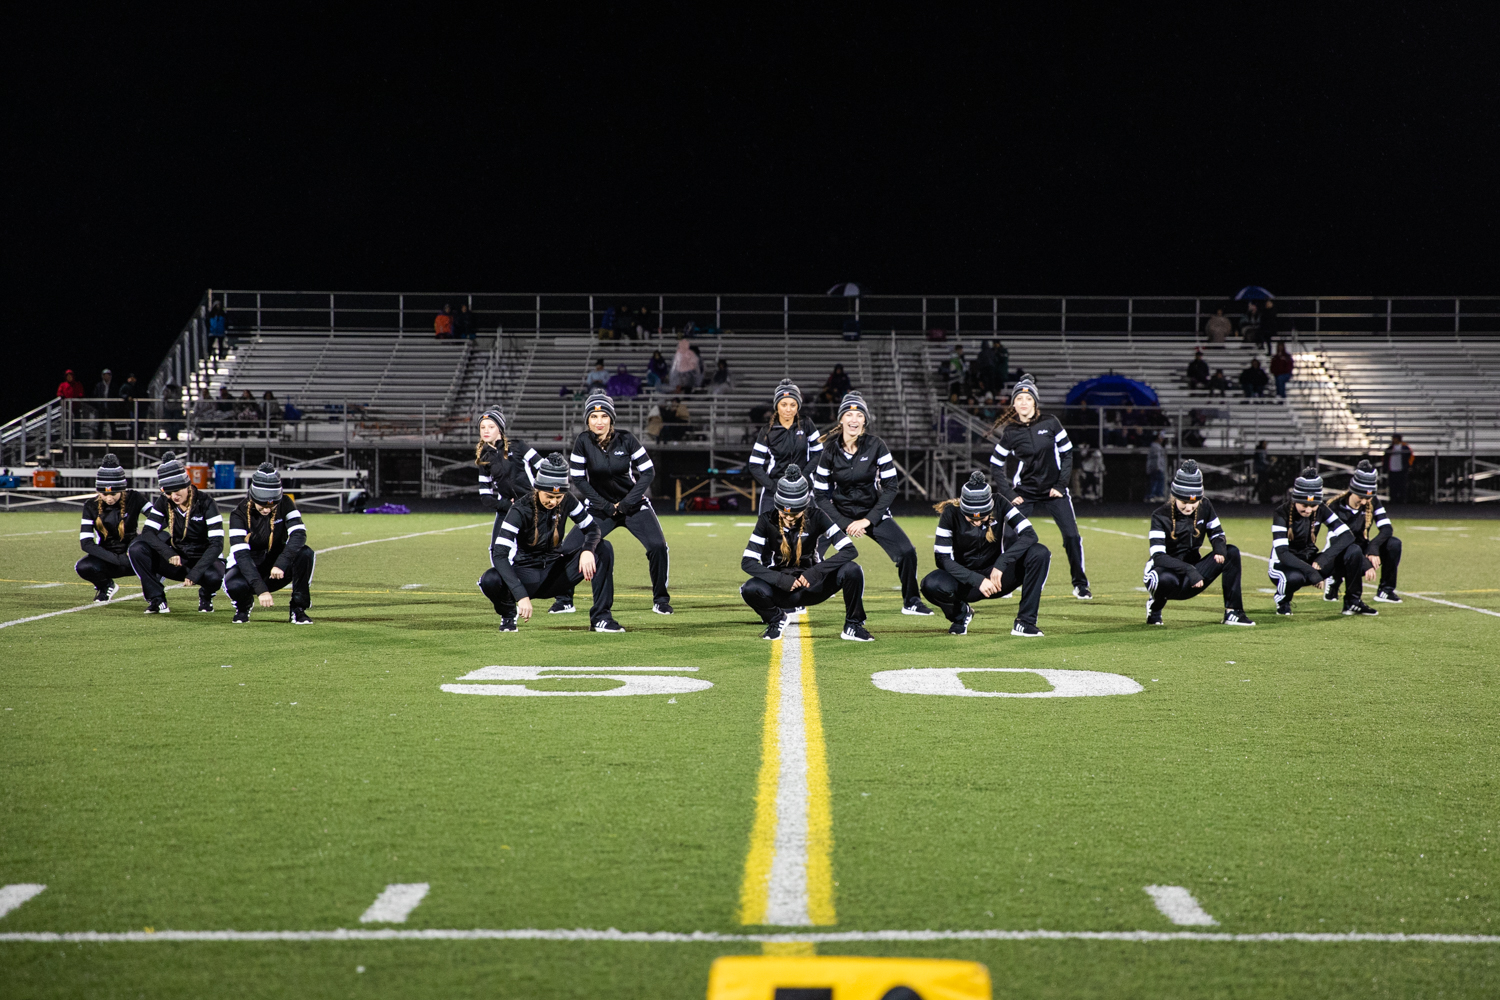 The+dance+team+learns+a+new+routine+for+every+game%2C+as+well+as+a+special+dance+specifically+for+the+Homecoming+assembly.+